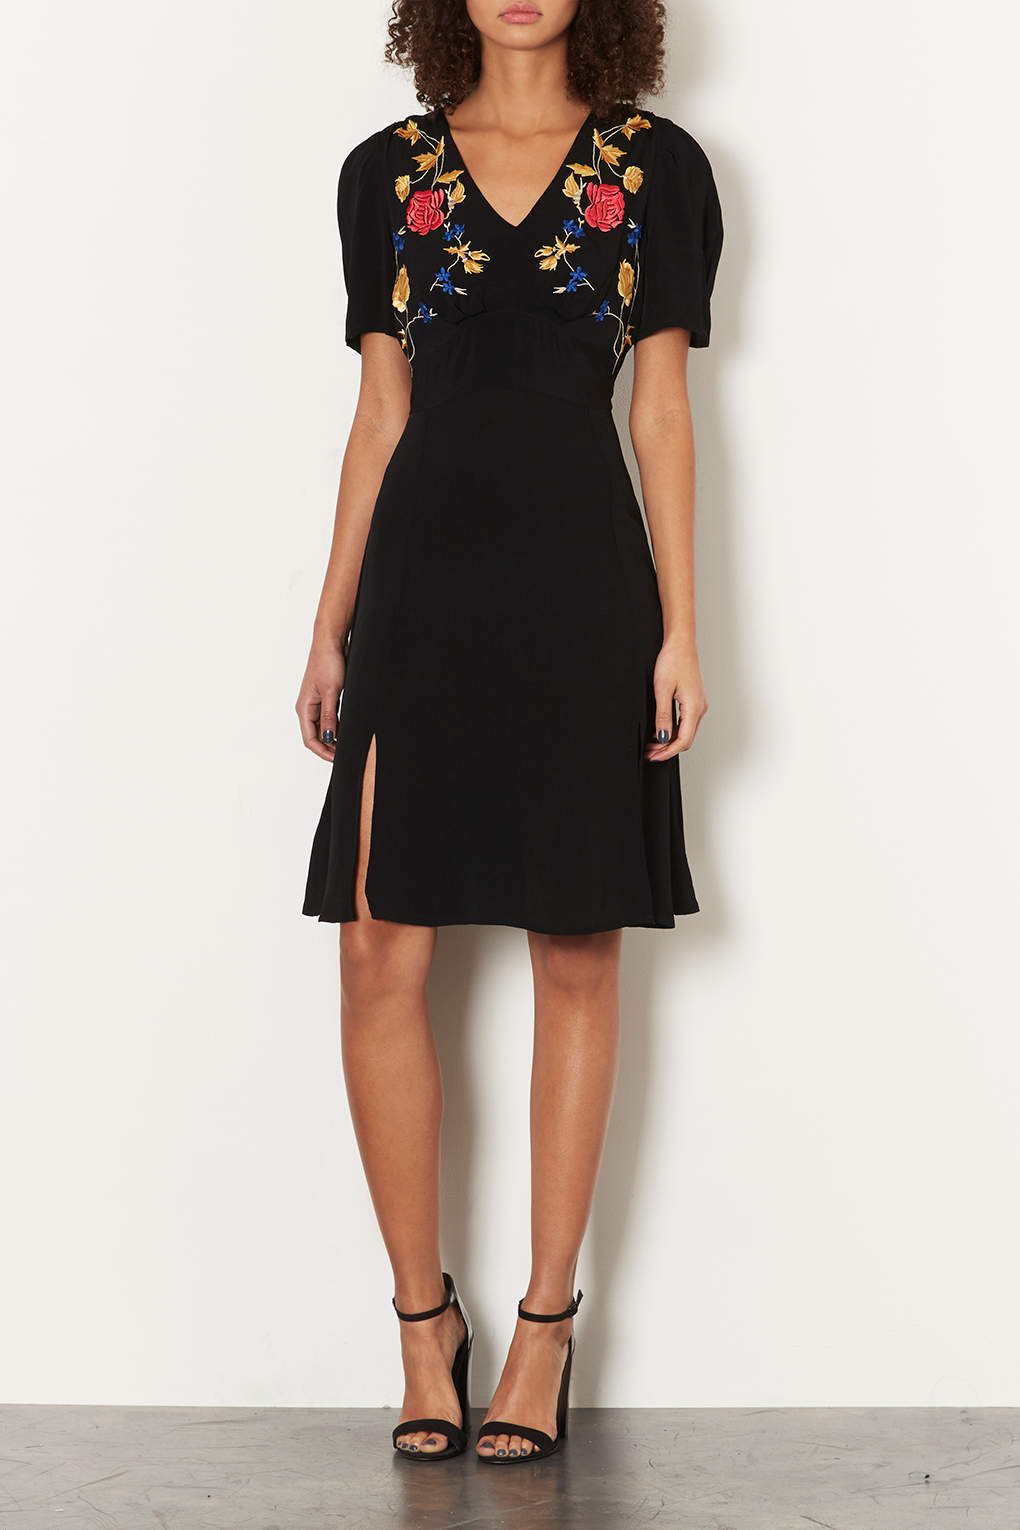 Embroidered Batwing Sleeve Flip Dress from Topshop R4400,00